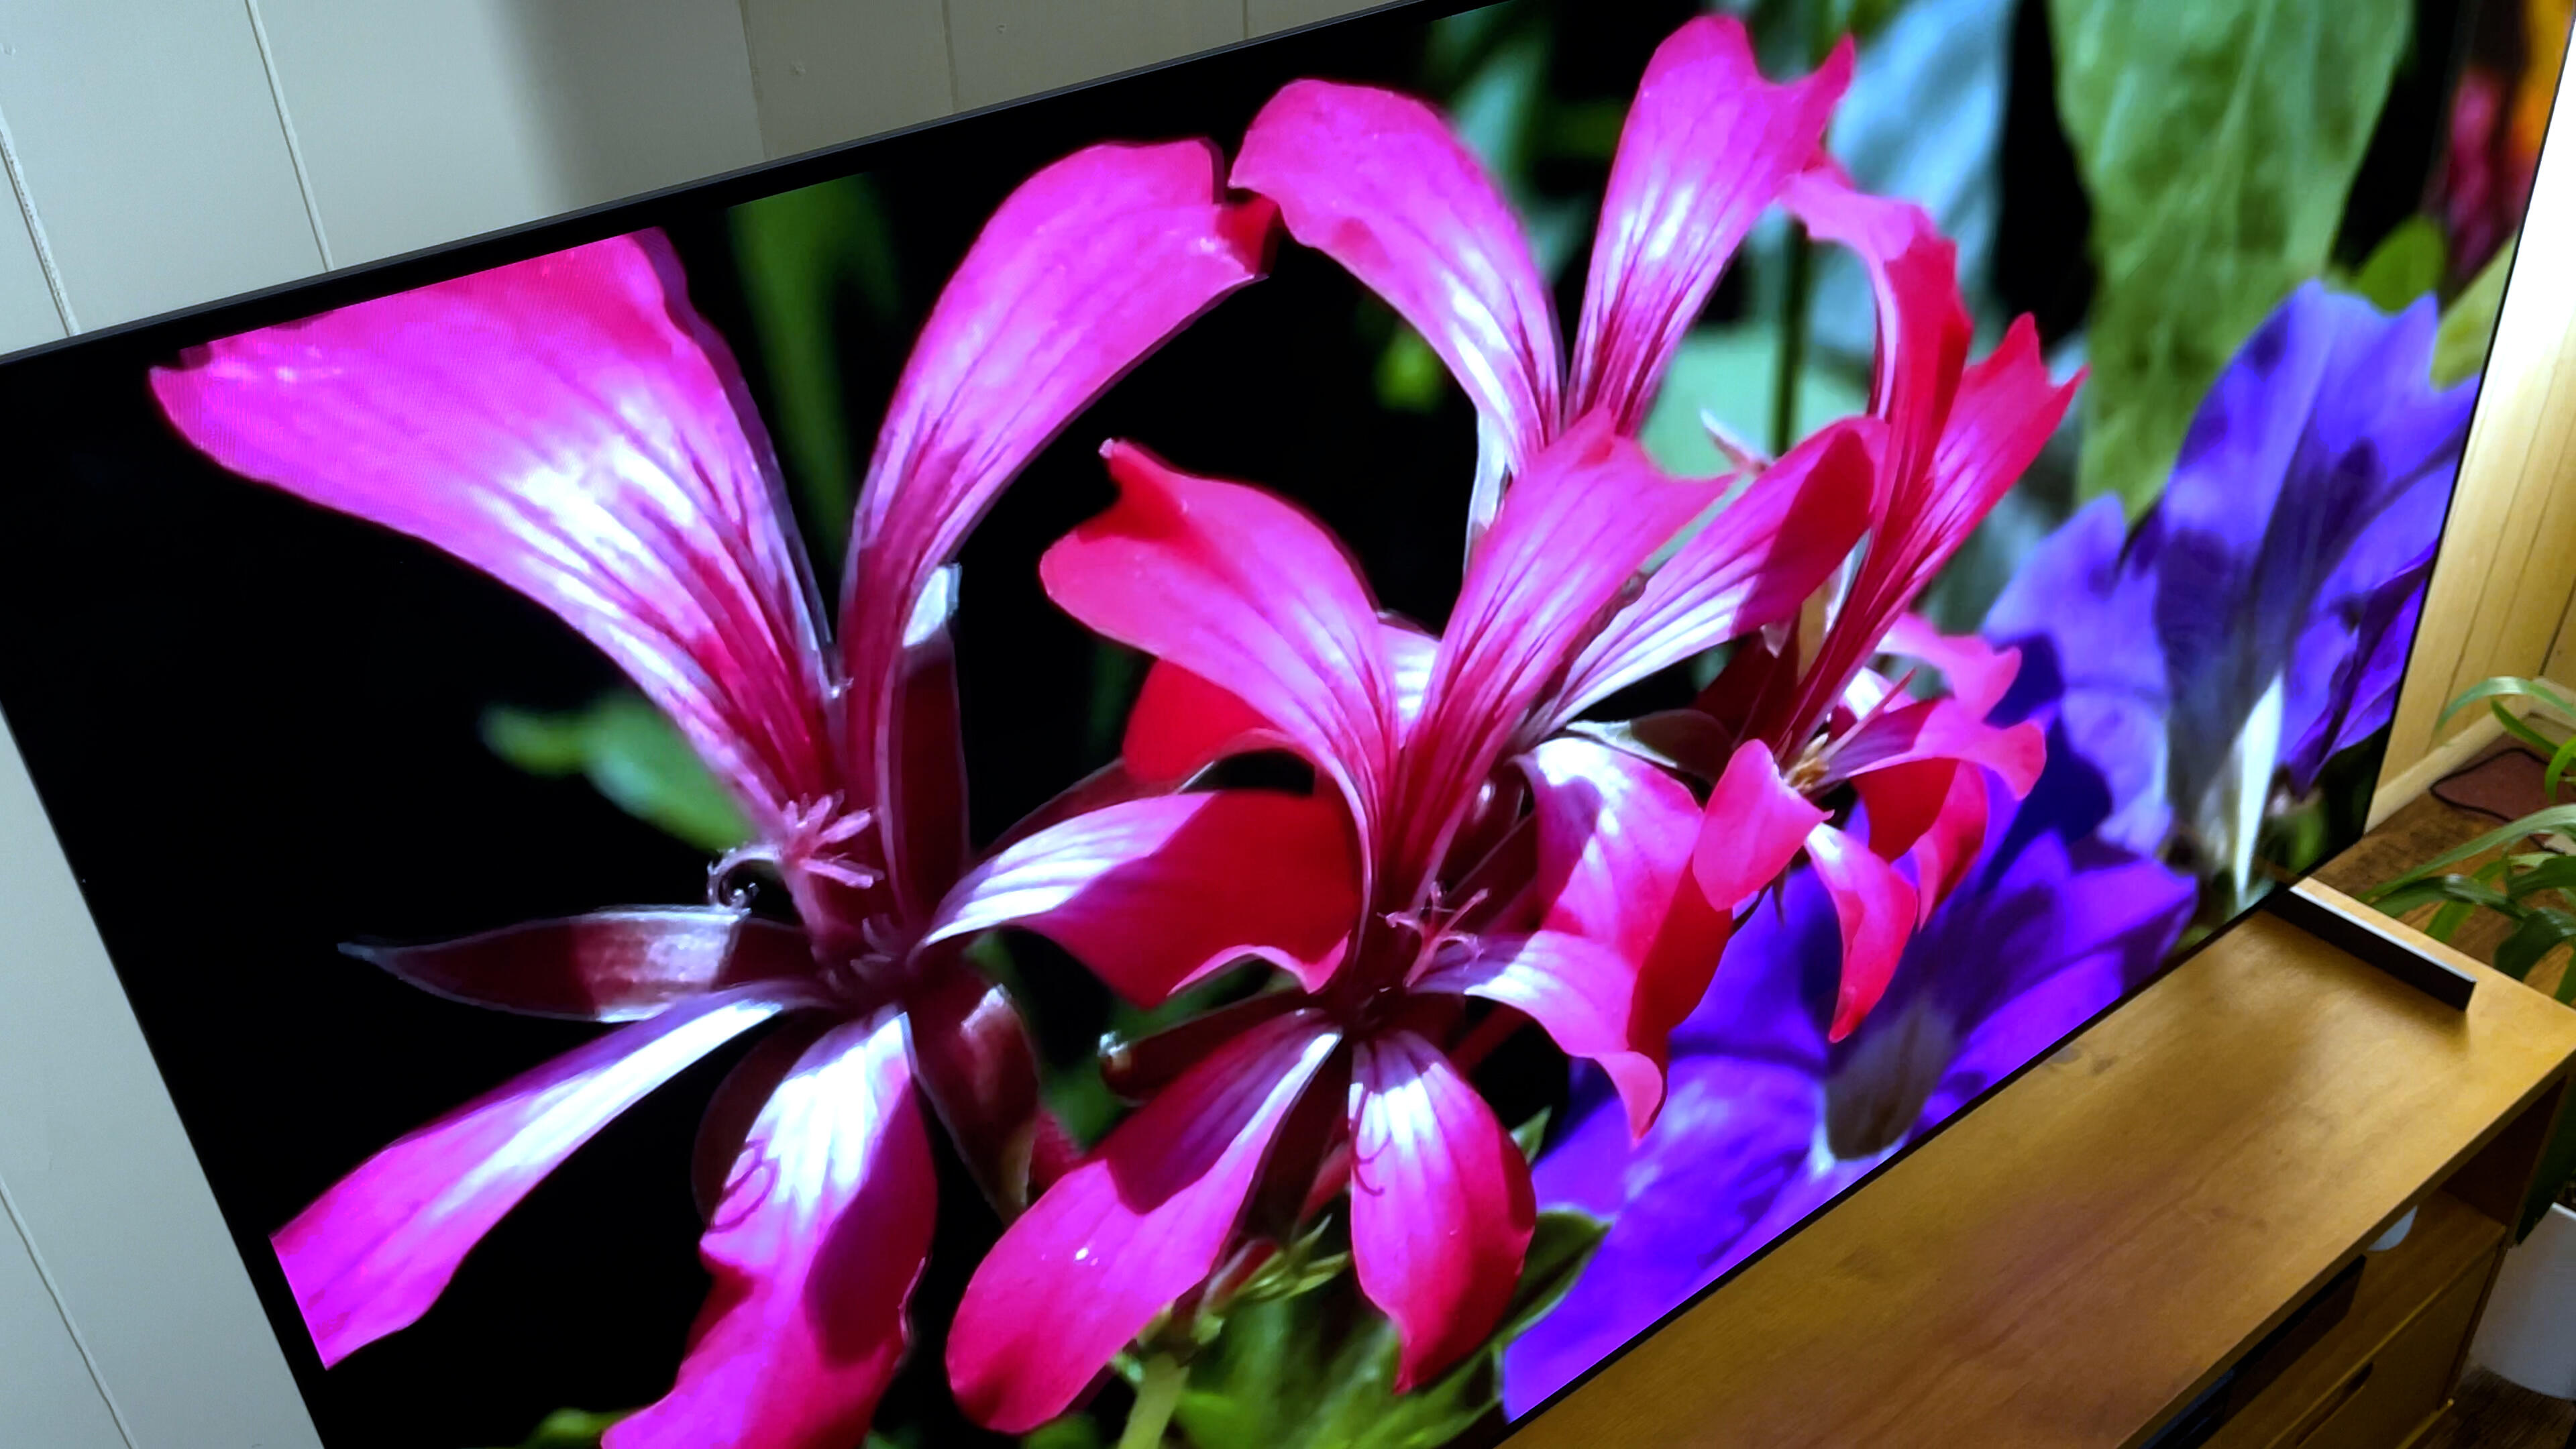 Video: LG G1 TV review: Can OLED picture quality get even better?